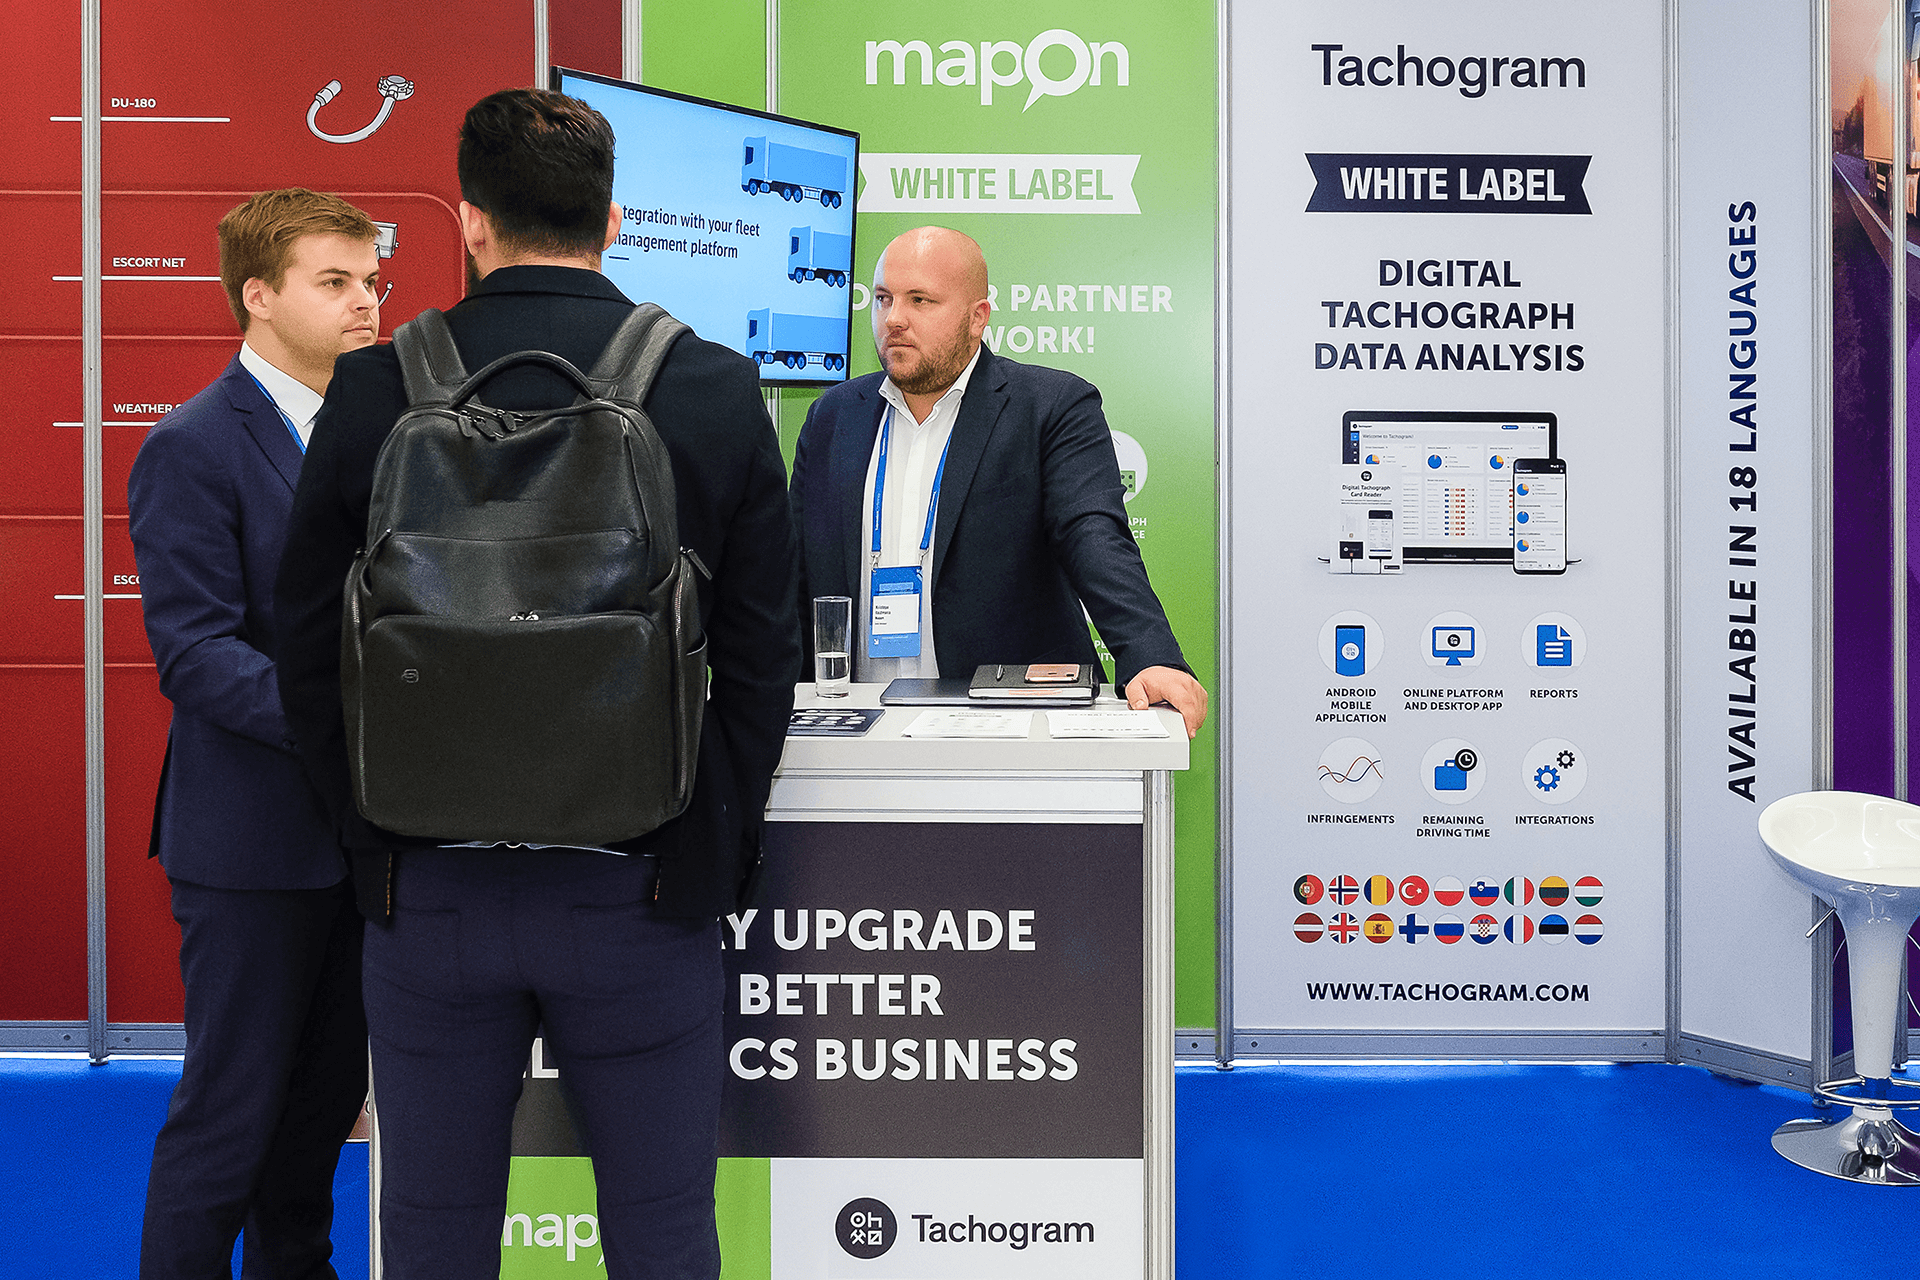 Mapon building partnerships at Telematics Conference in Prague